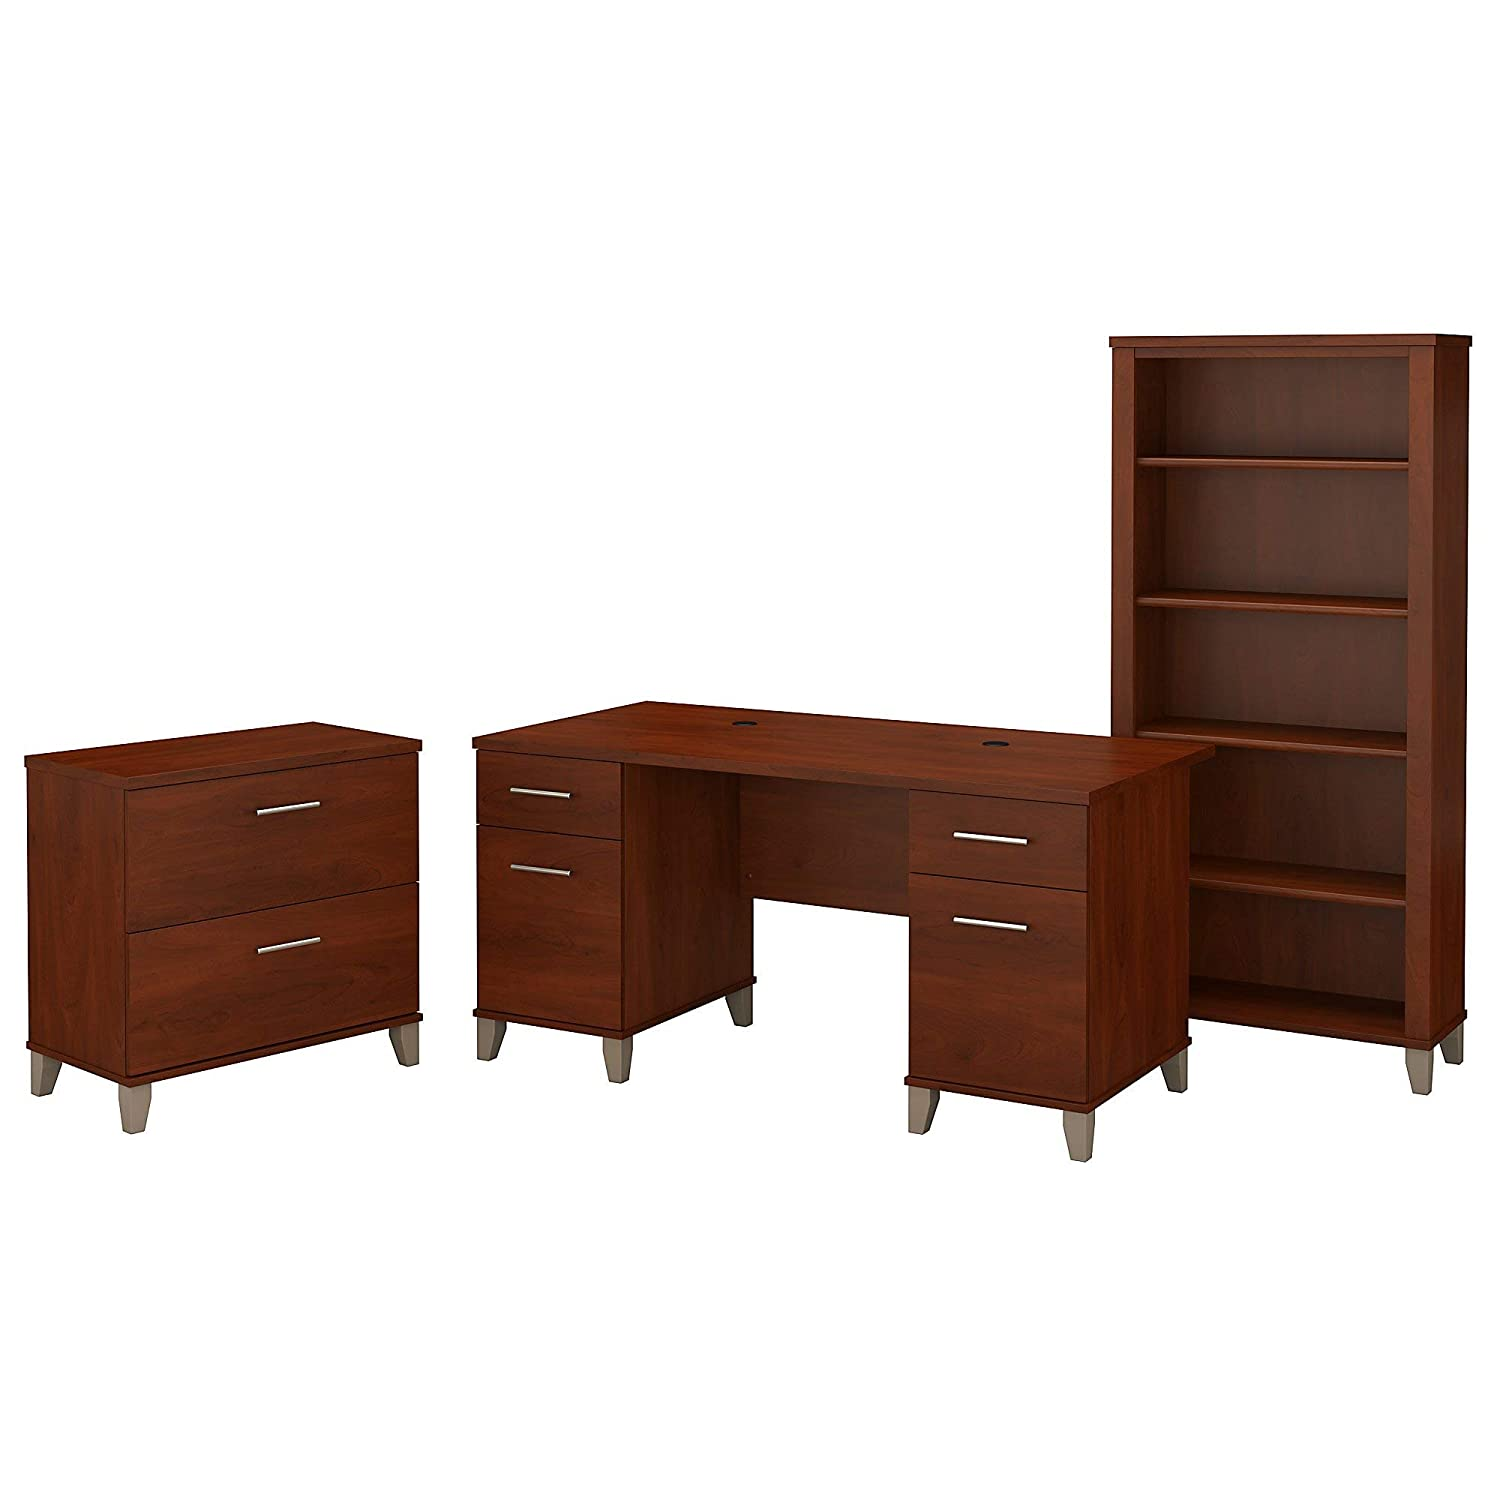 Outstanding Bush Furniture Somerset 60W Office Desk With Lateral File Cabinet And 5 Shelf Bookcase In Hansen Cherry Download Free Architecture Designs Embacsunscenecom